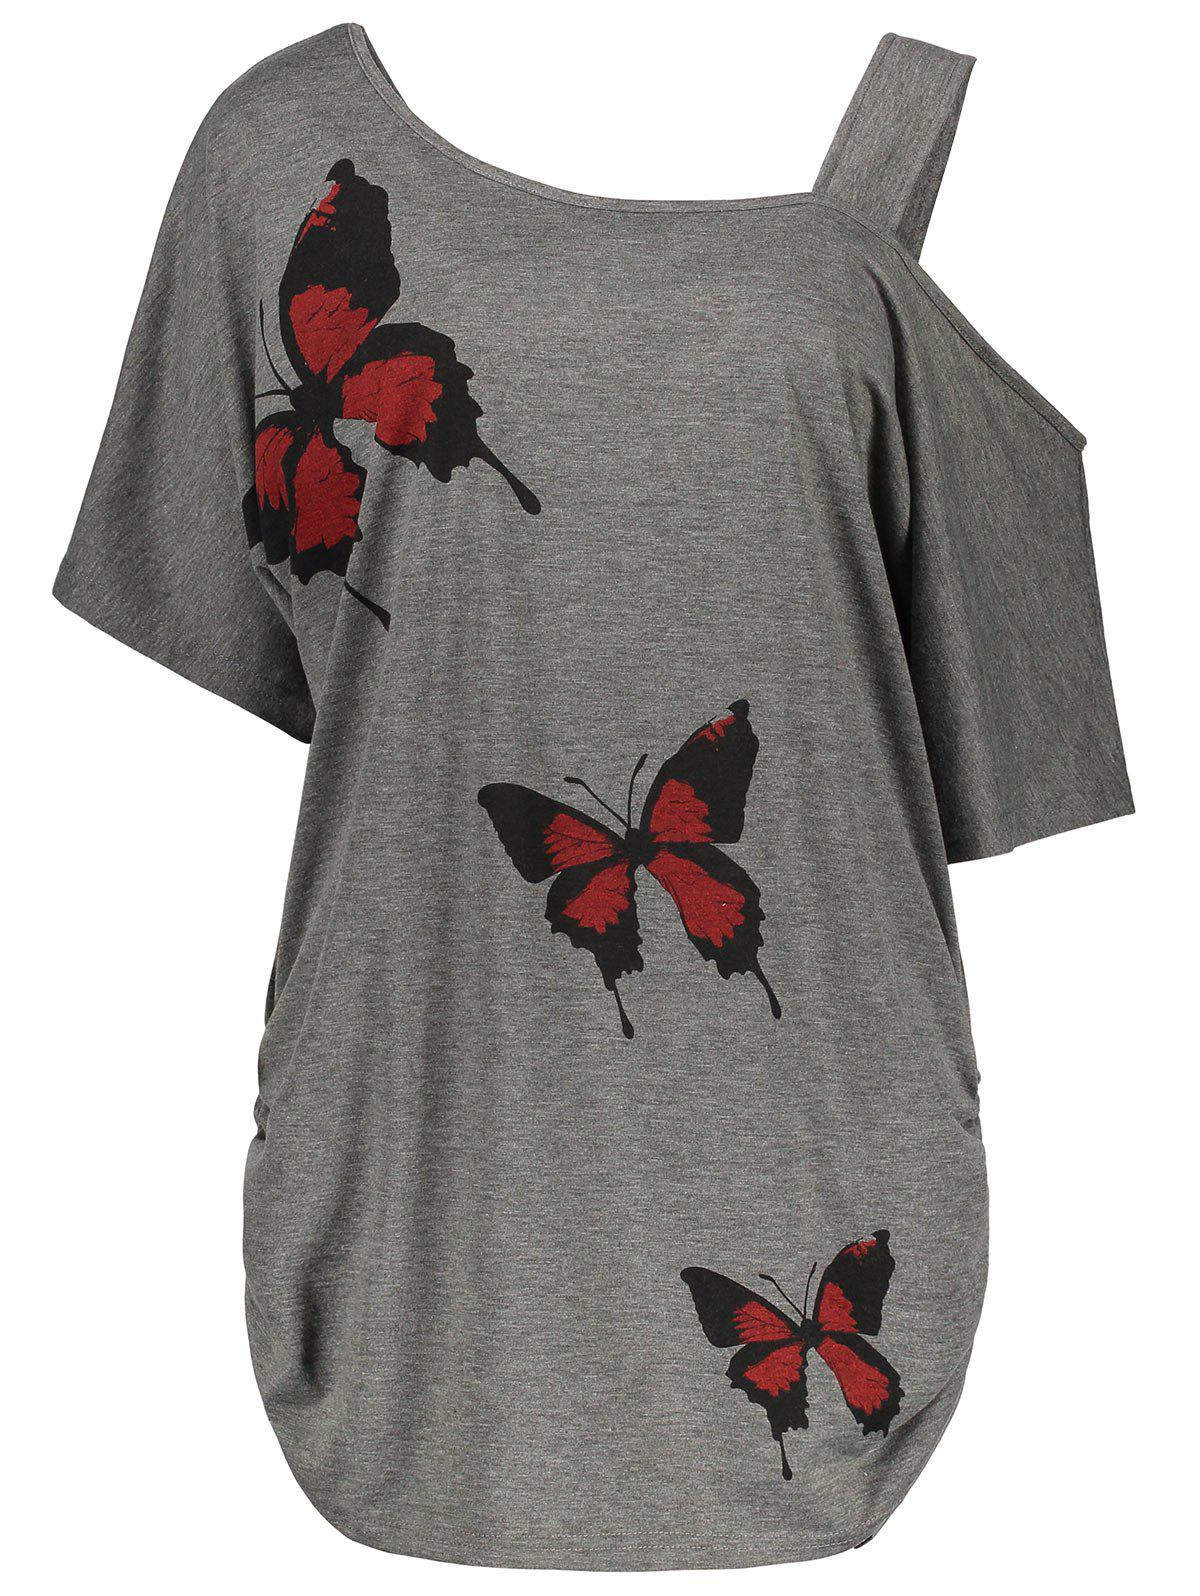 Plus Size Cold Shoulder Butterfly Print Top plus size cold shoulder butterfly print top